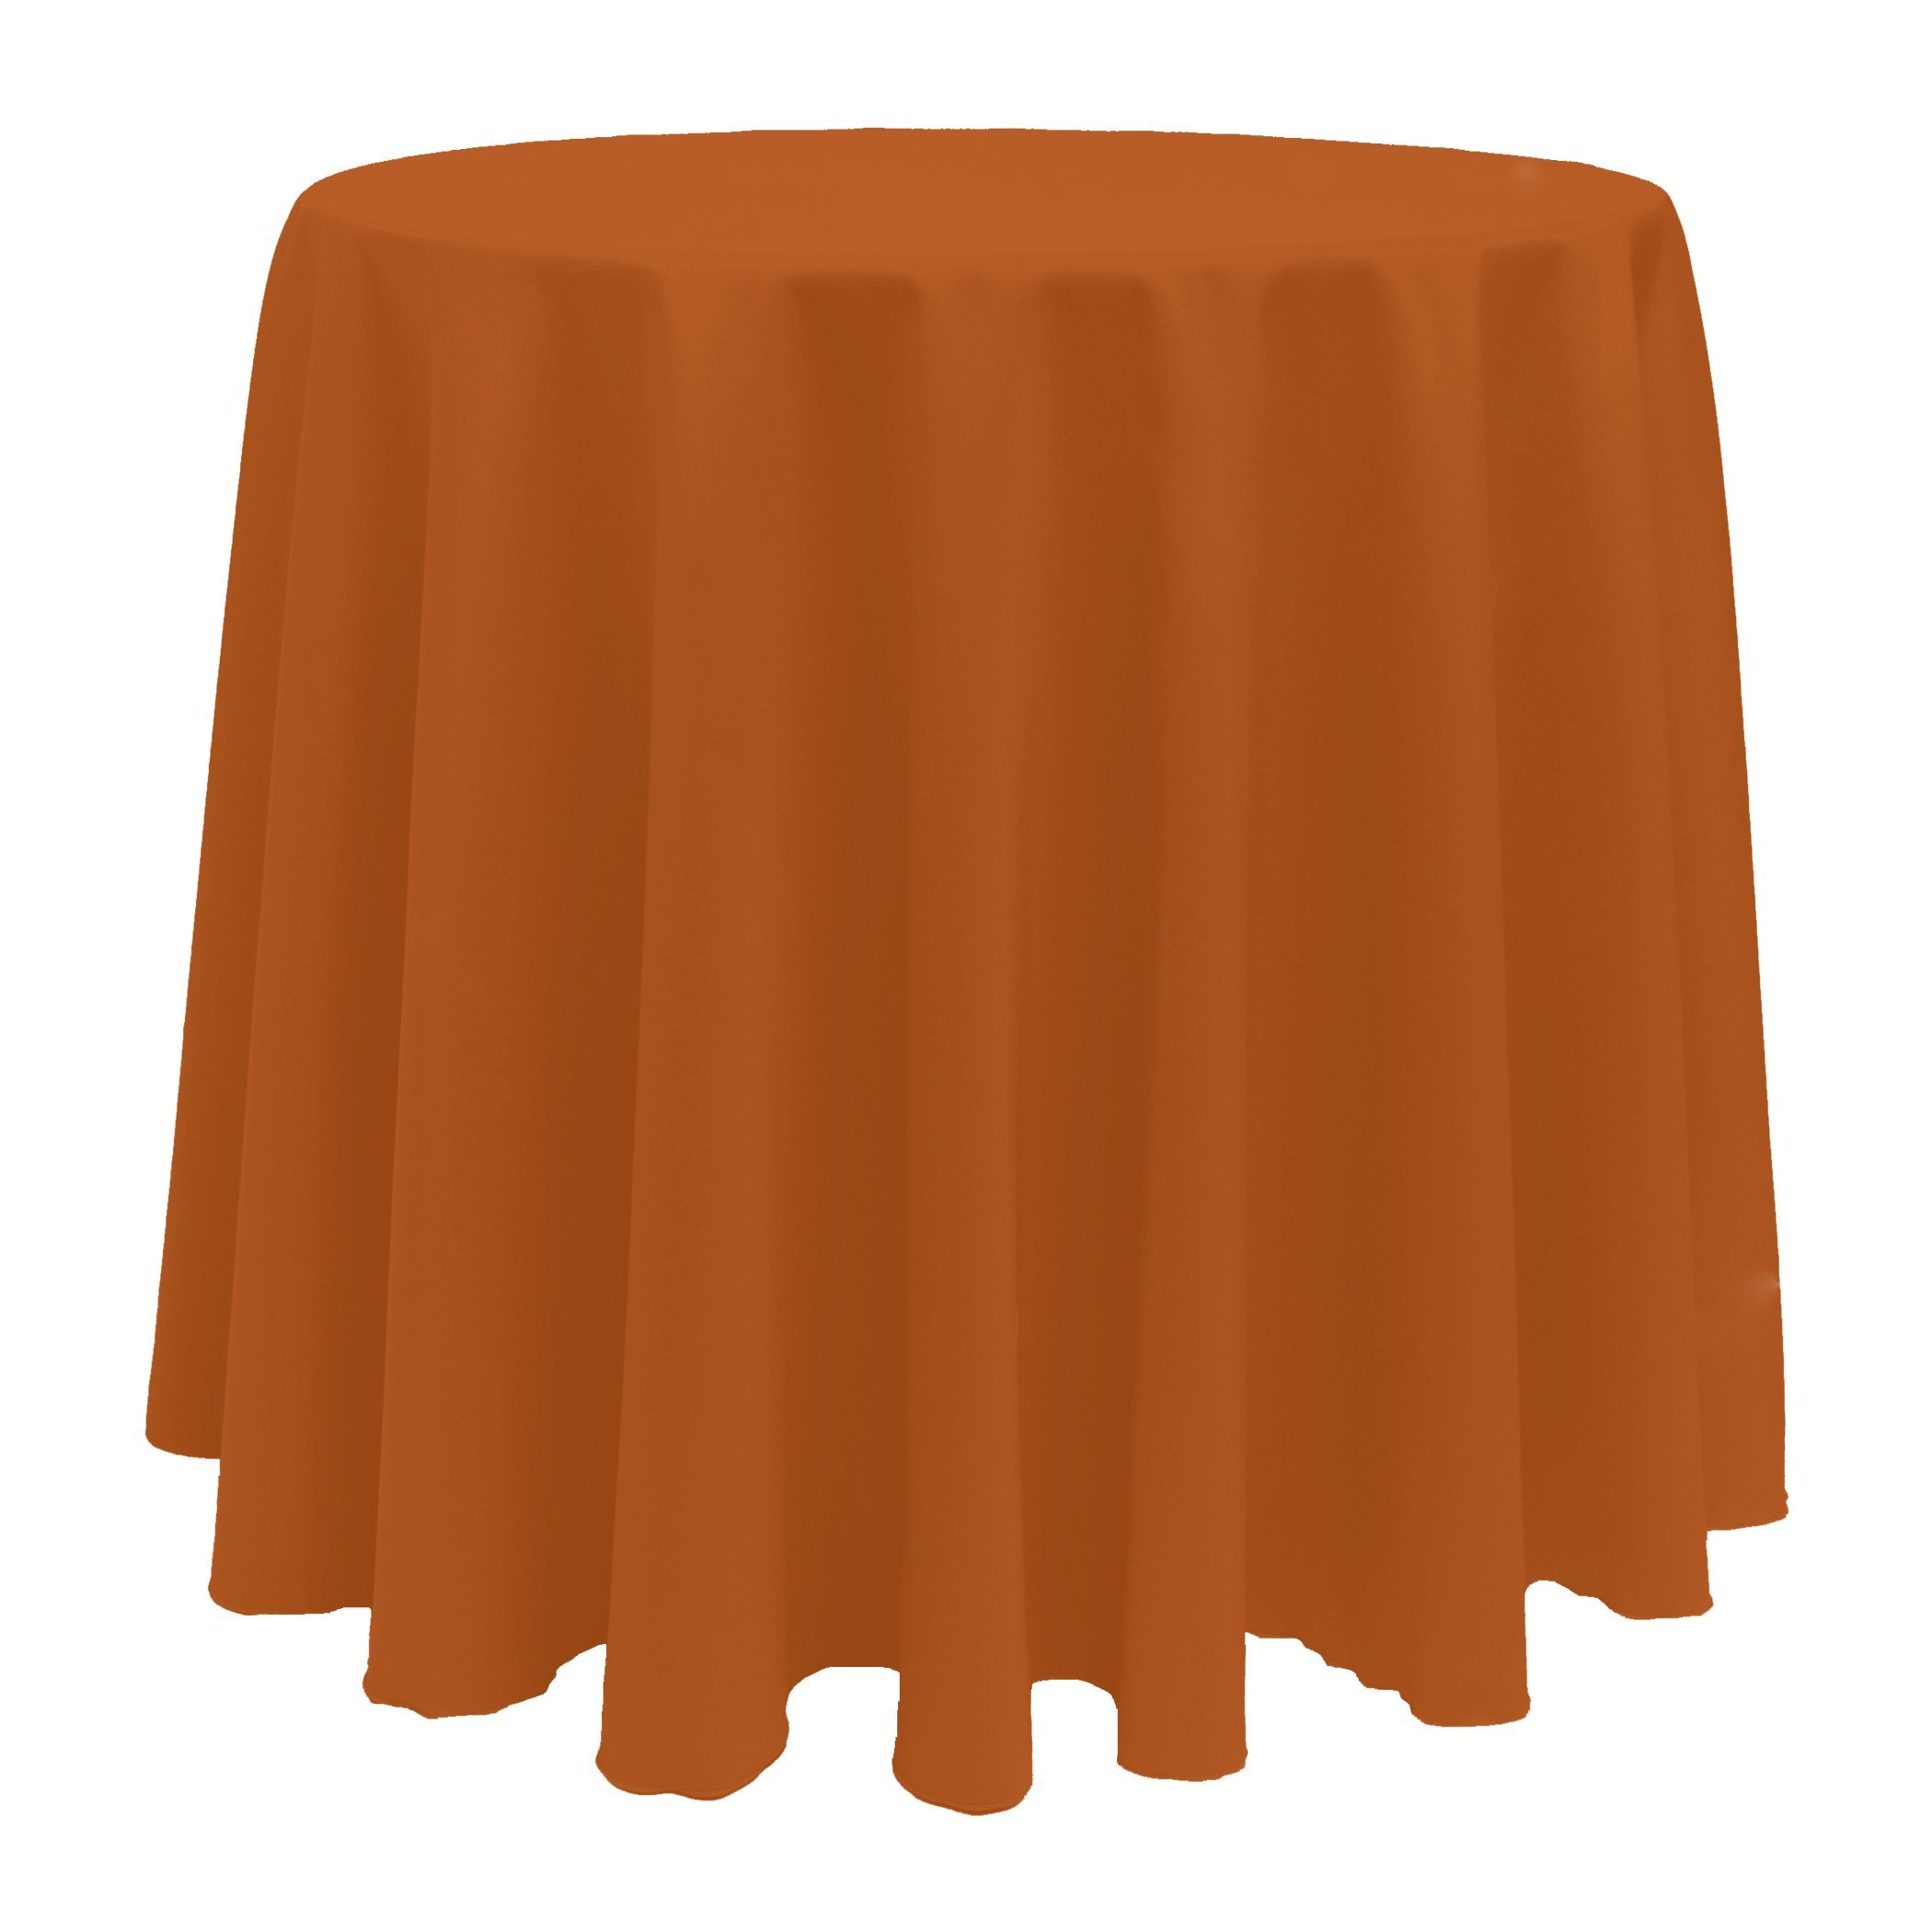 Ultimate Textile (5 Pack) 120-Inch Round Polyester Linen Tablecloth - for Wedding, Restaurant or Banquet use, Burnt Orange by Ultimate Textile